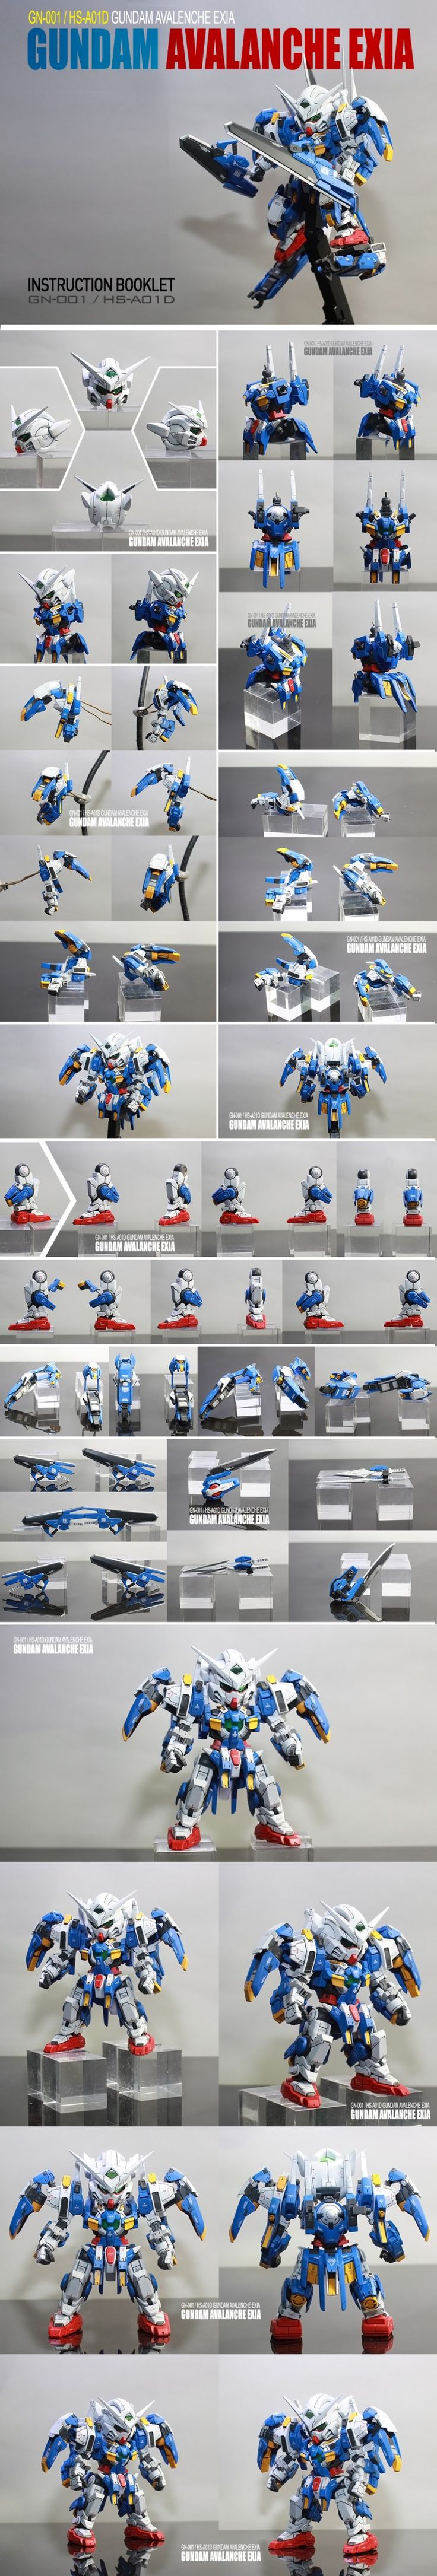 0nam5043's Latest Work: SD GUNDAM AVALANCHE EXIA. Full REVIEW (A Lot of Images) http://www.gunjap.net/site/?p=329361